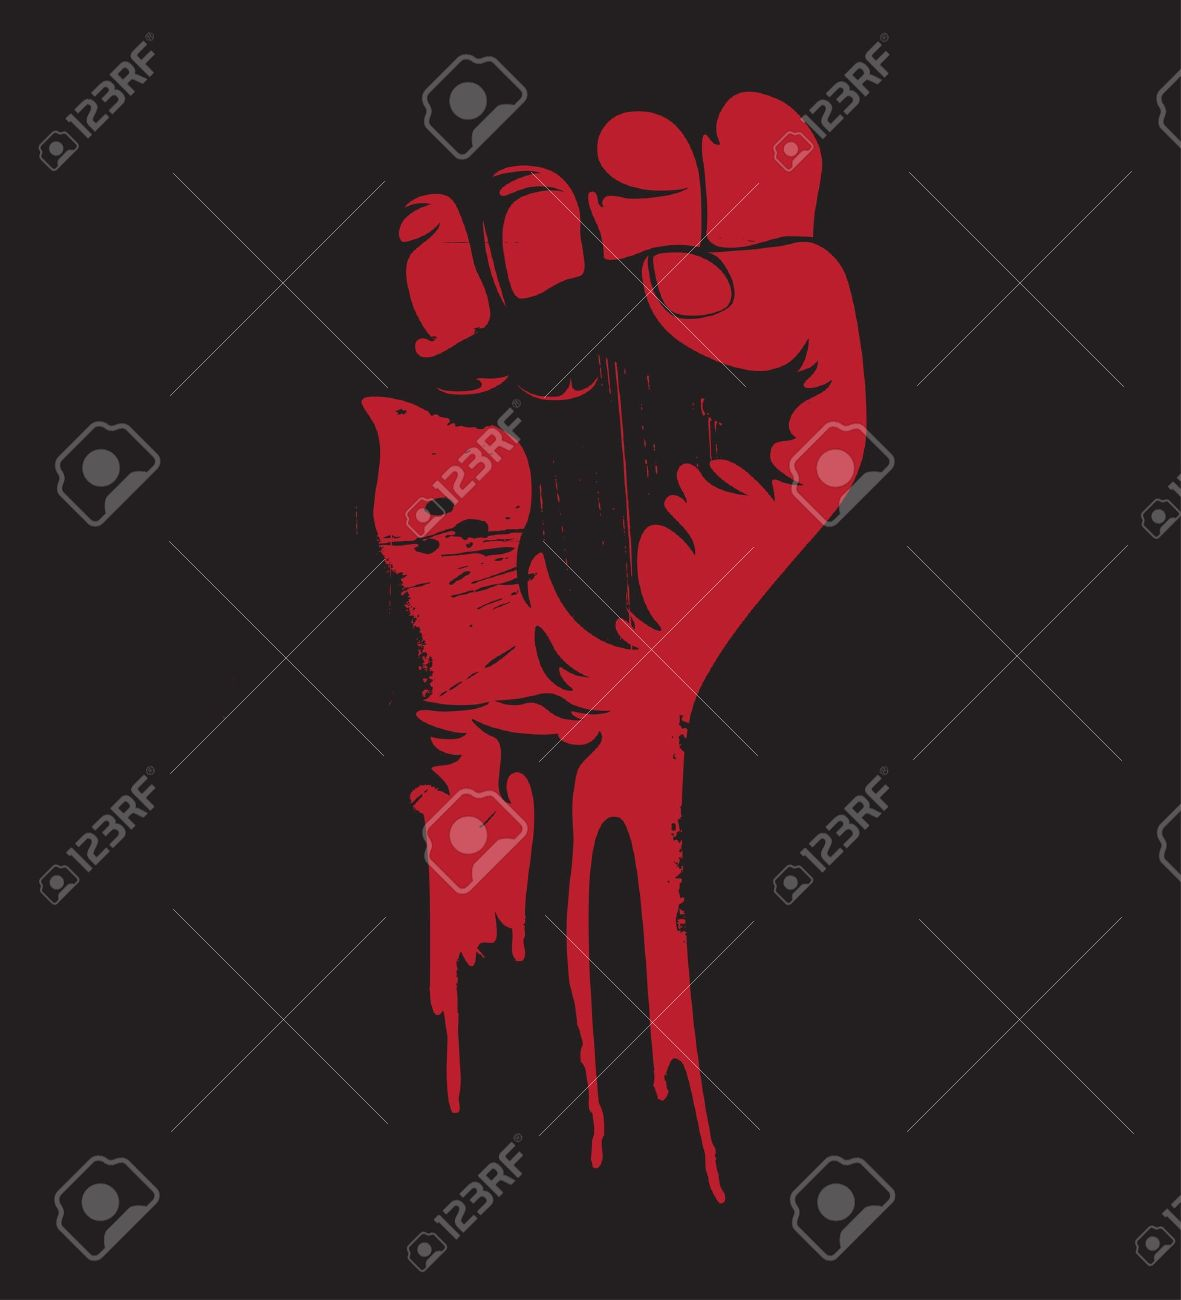 Vector illustration of a blooding clenched fist held high in protest. Stock Vector - 9931412